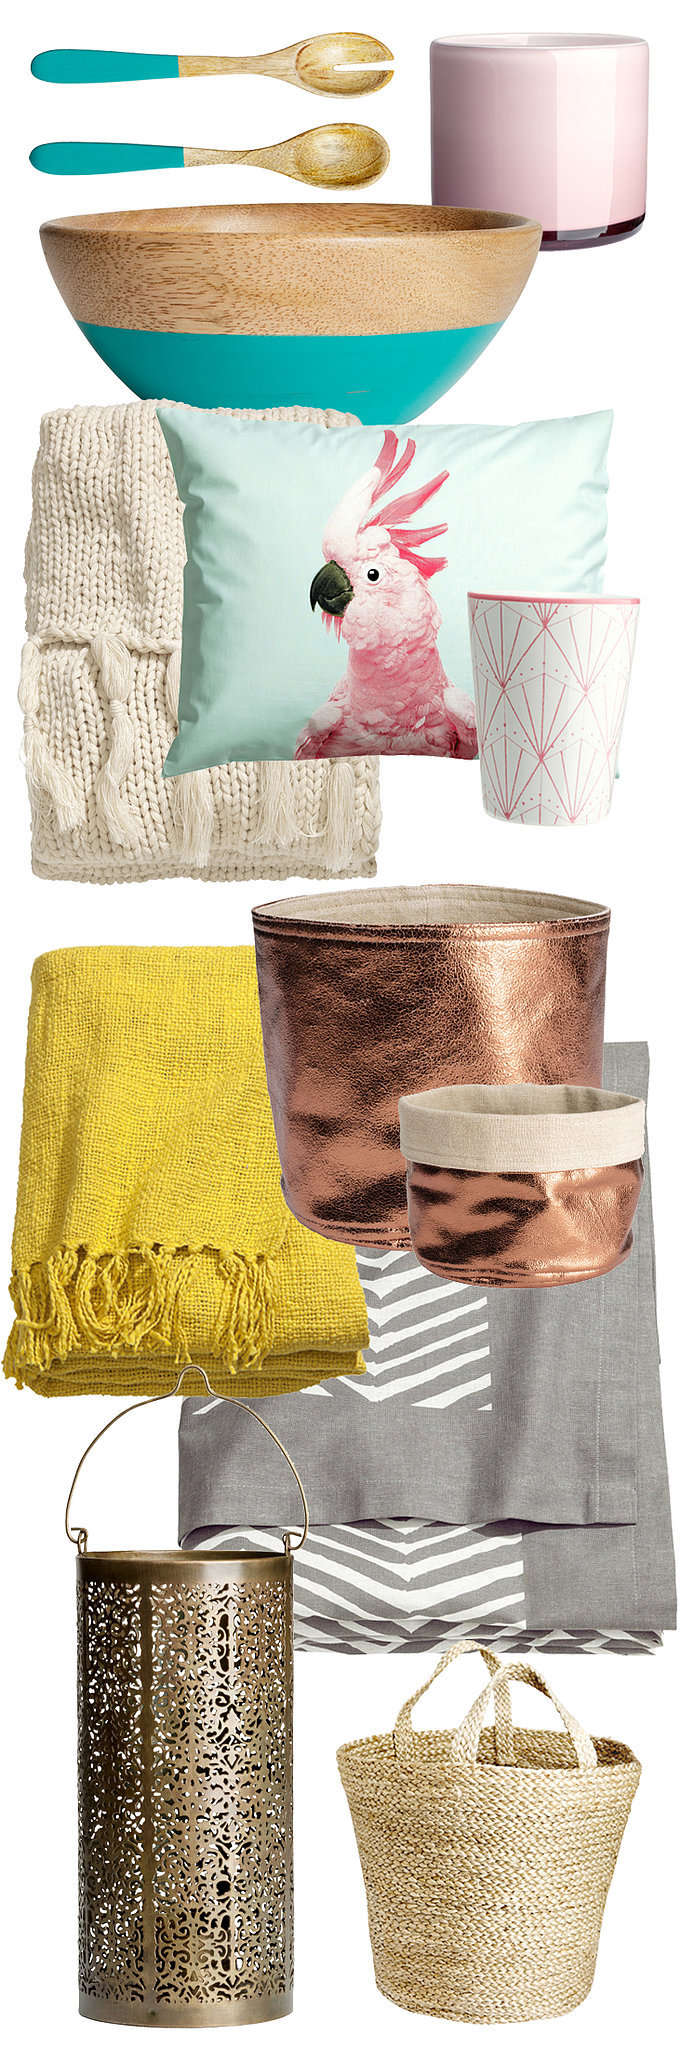 H&M's 2014 Spring Home Collection